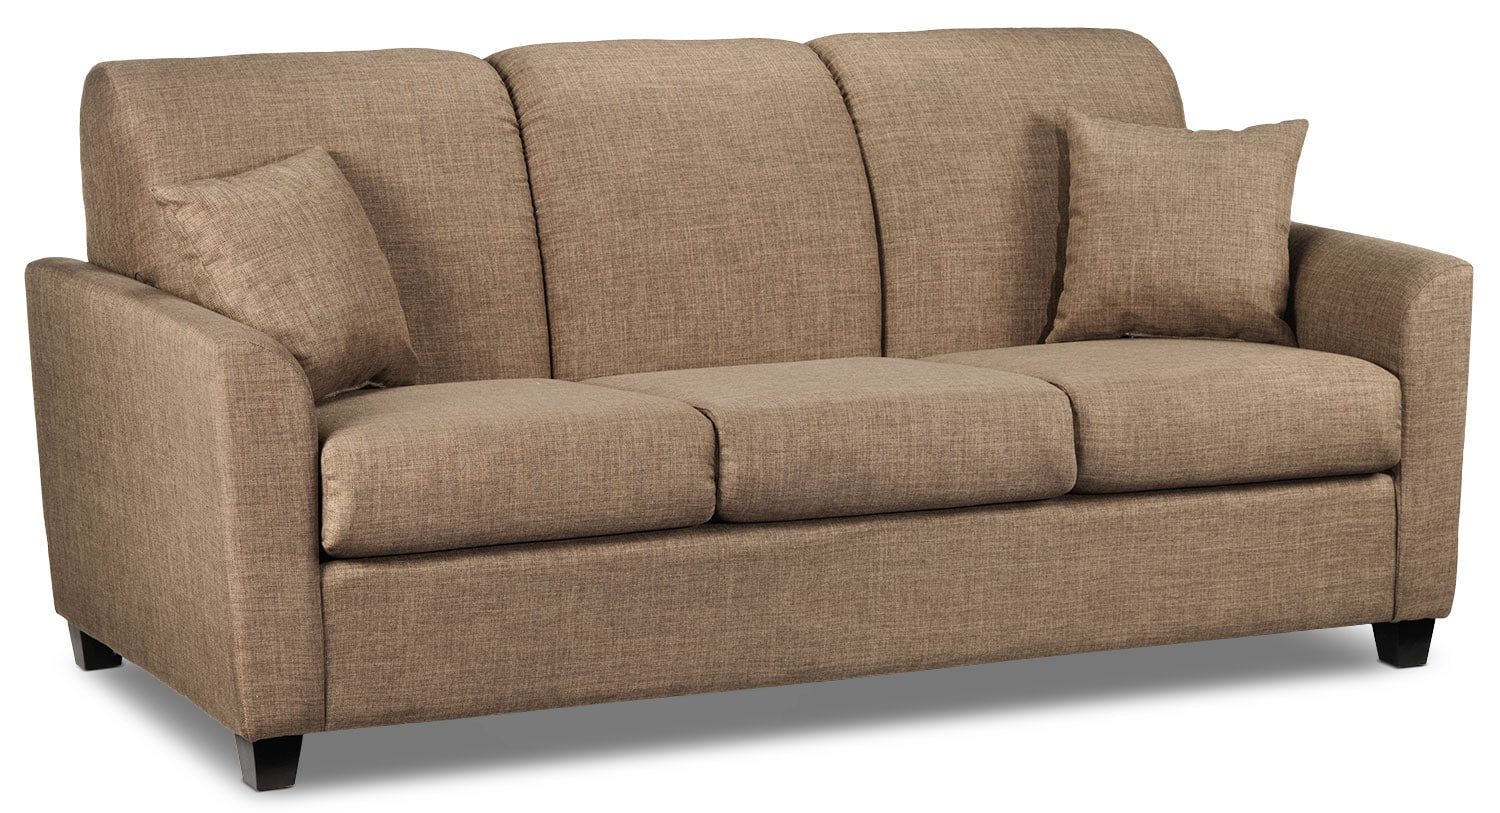 Living Room Furniture - Roxanne Sofa - Hazelnut